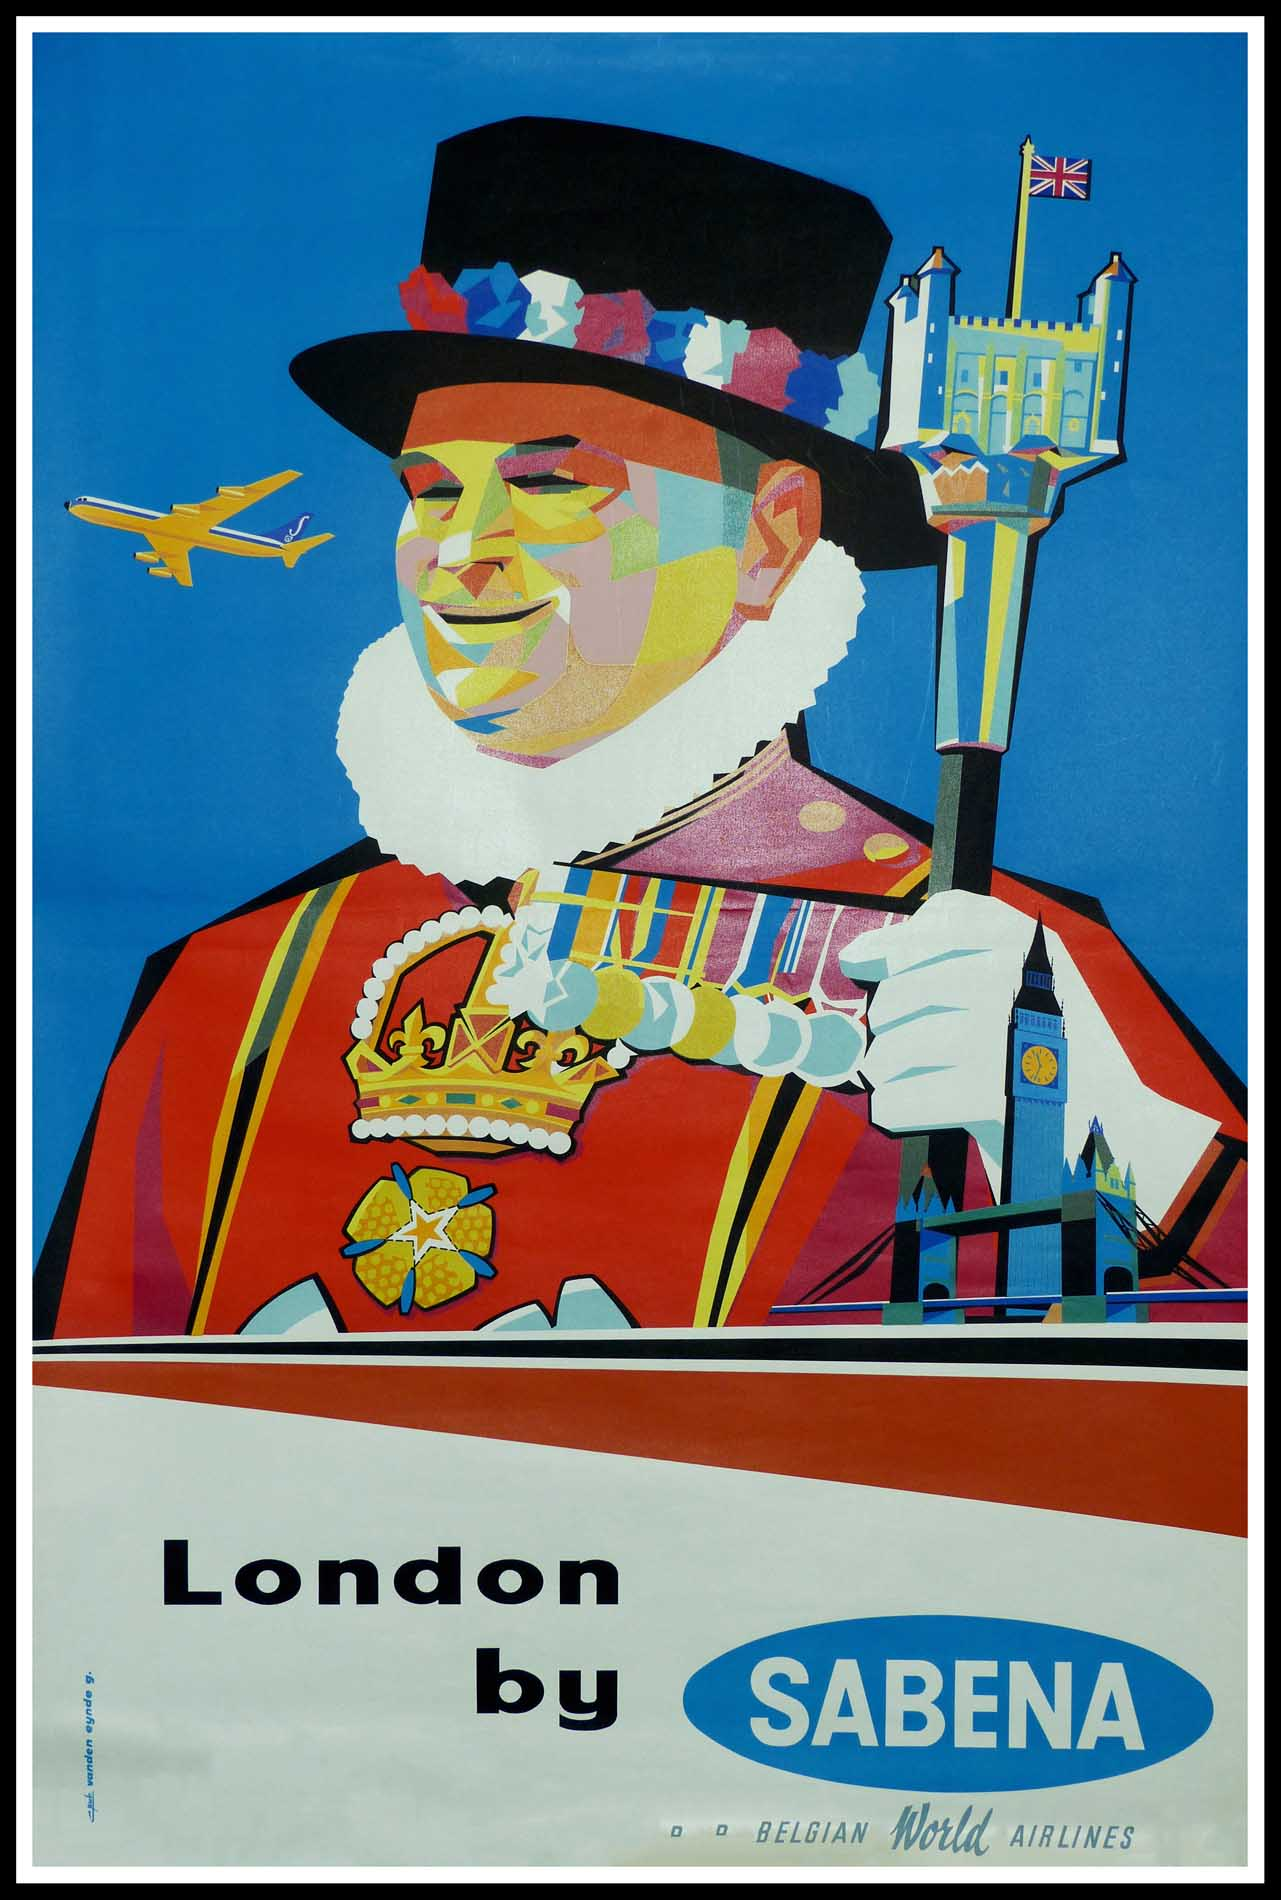 """(alt=""""Original vintage travel poster London by SABENA, Belgian world airlines , circa 1950 signed in the plate by VANDEN EYNDE and printed by Linsmô"""")"""